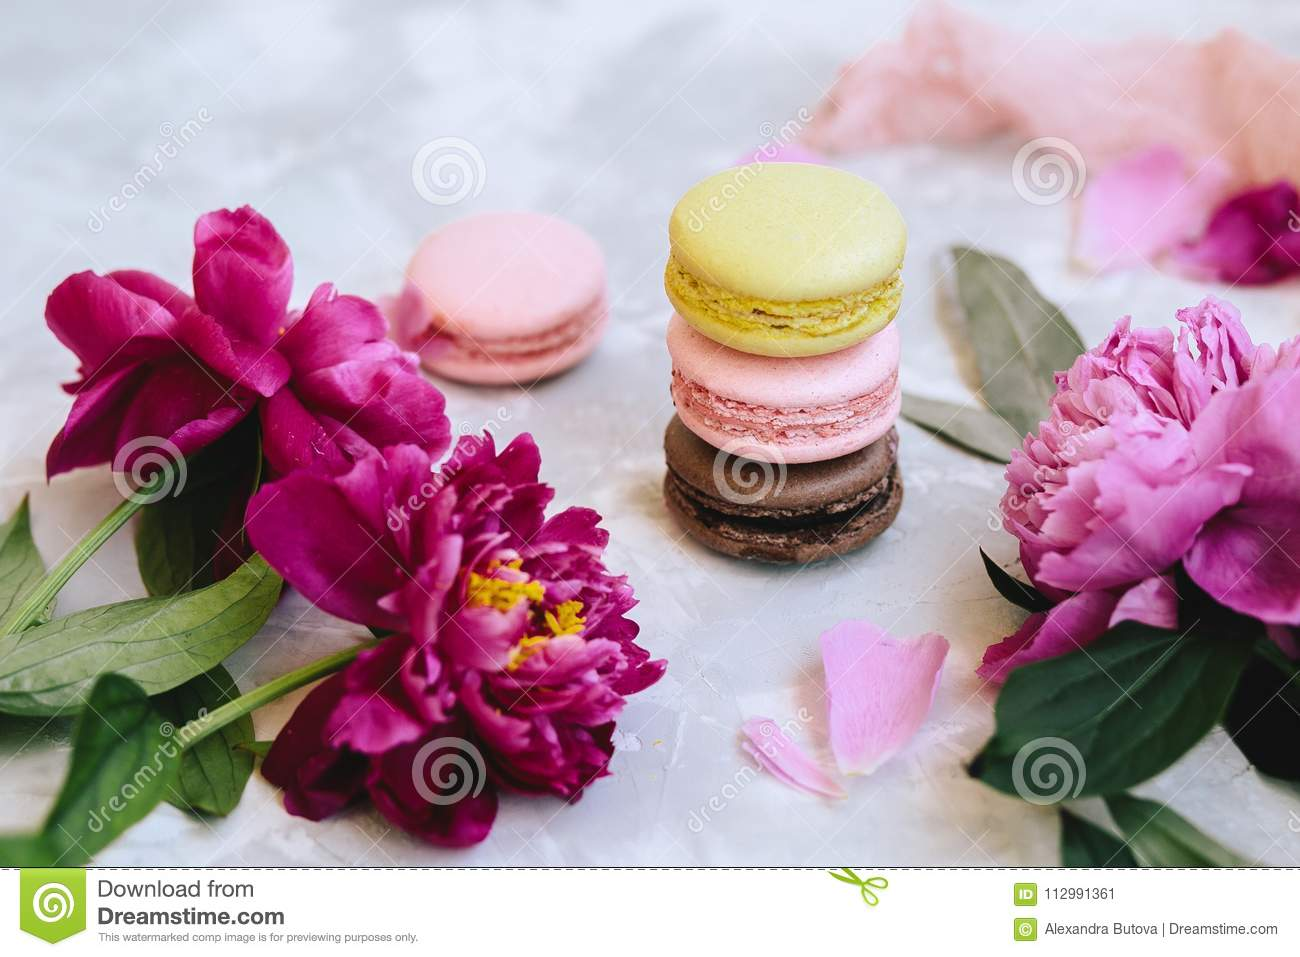 A pile of colorful delicious macaroon closeup with pink peony flowers, petals on a light background concrete